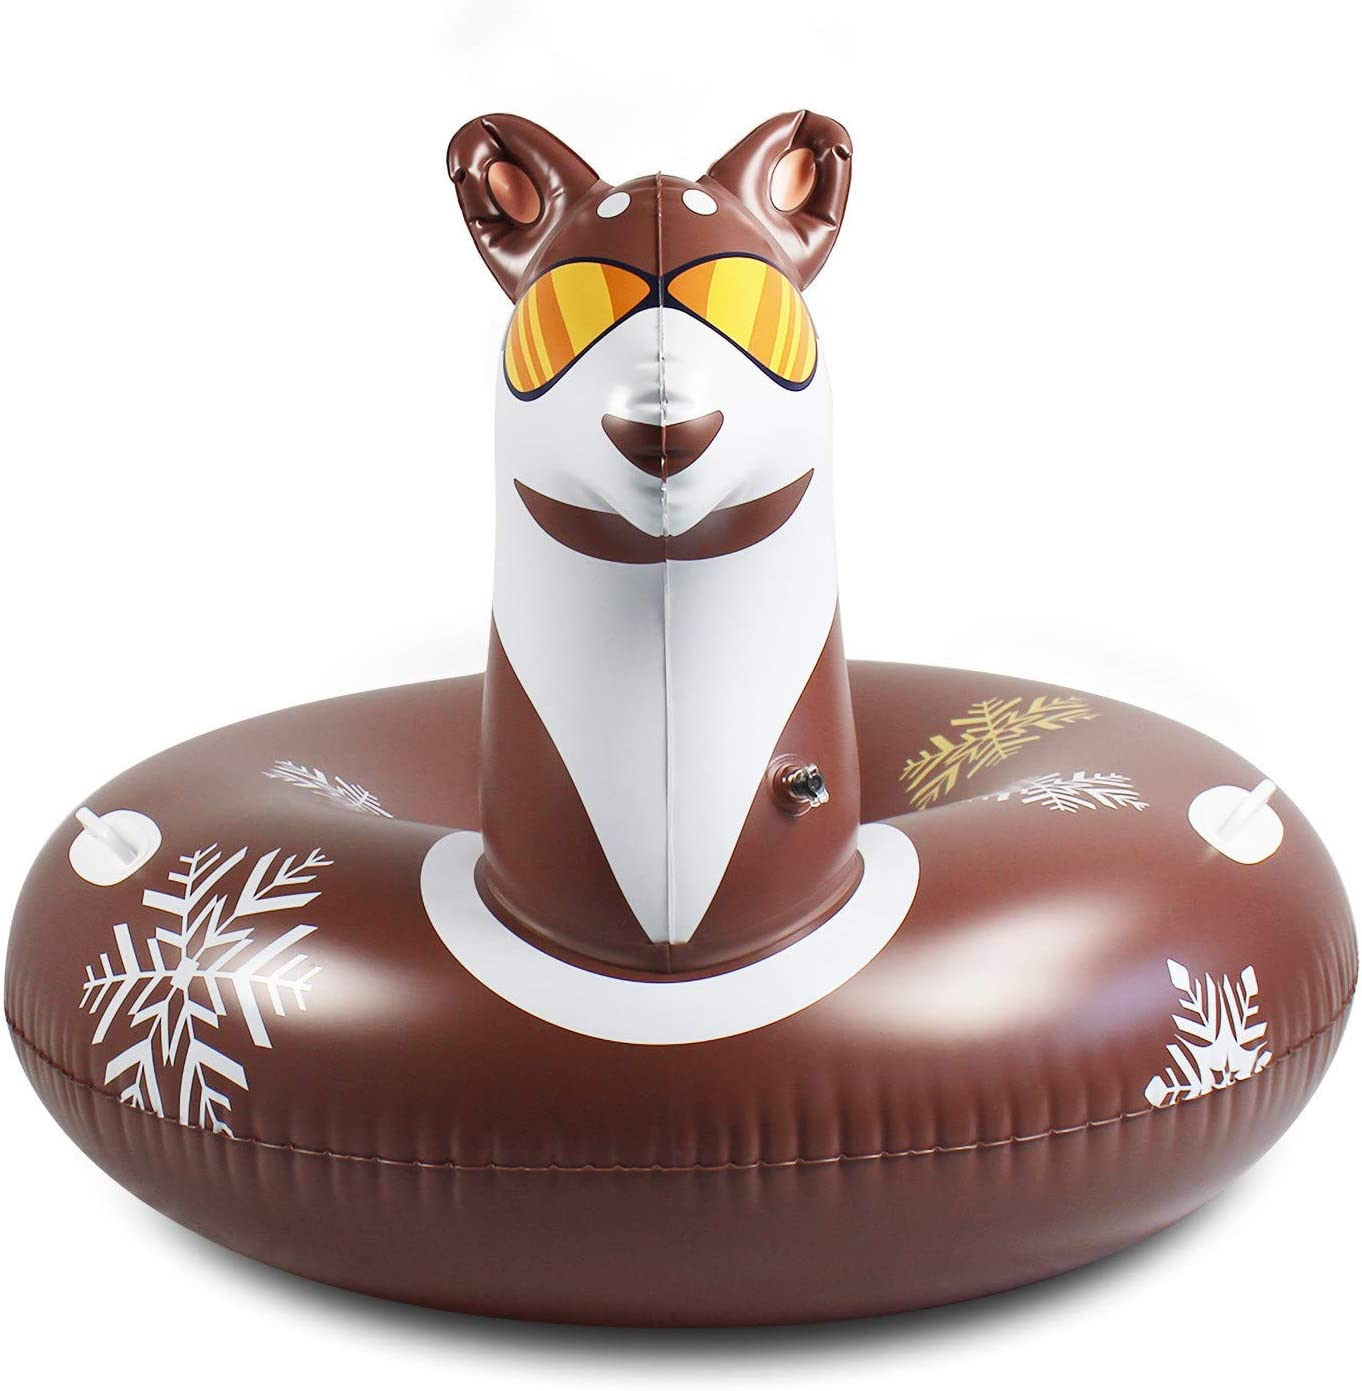 Selomore Snow Tube 46 Inch Inflatable for Sled Ad Topics on Deluxe TV Kids and